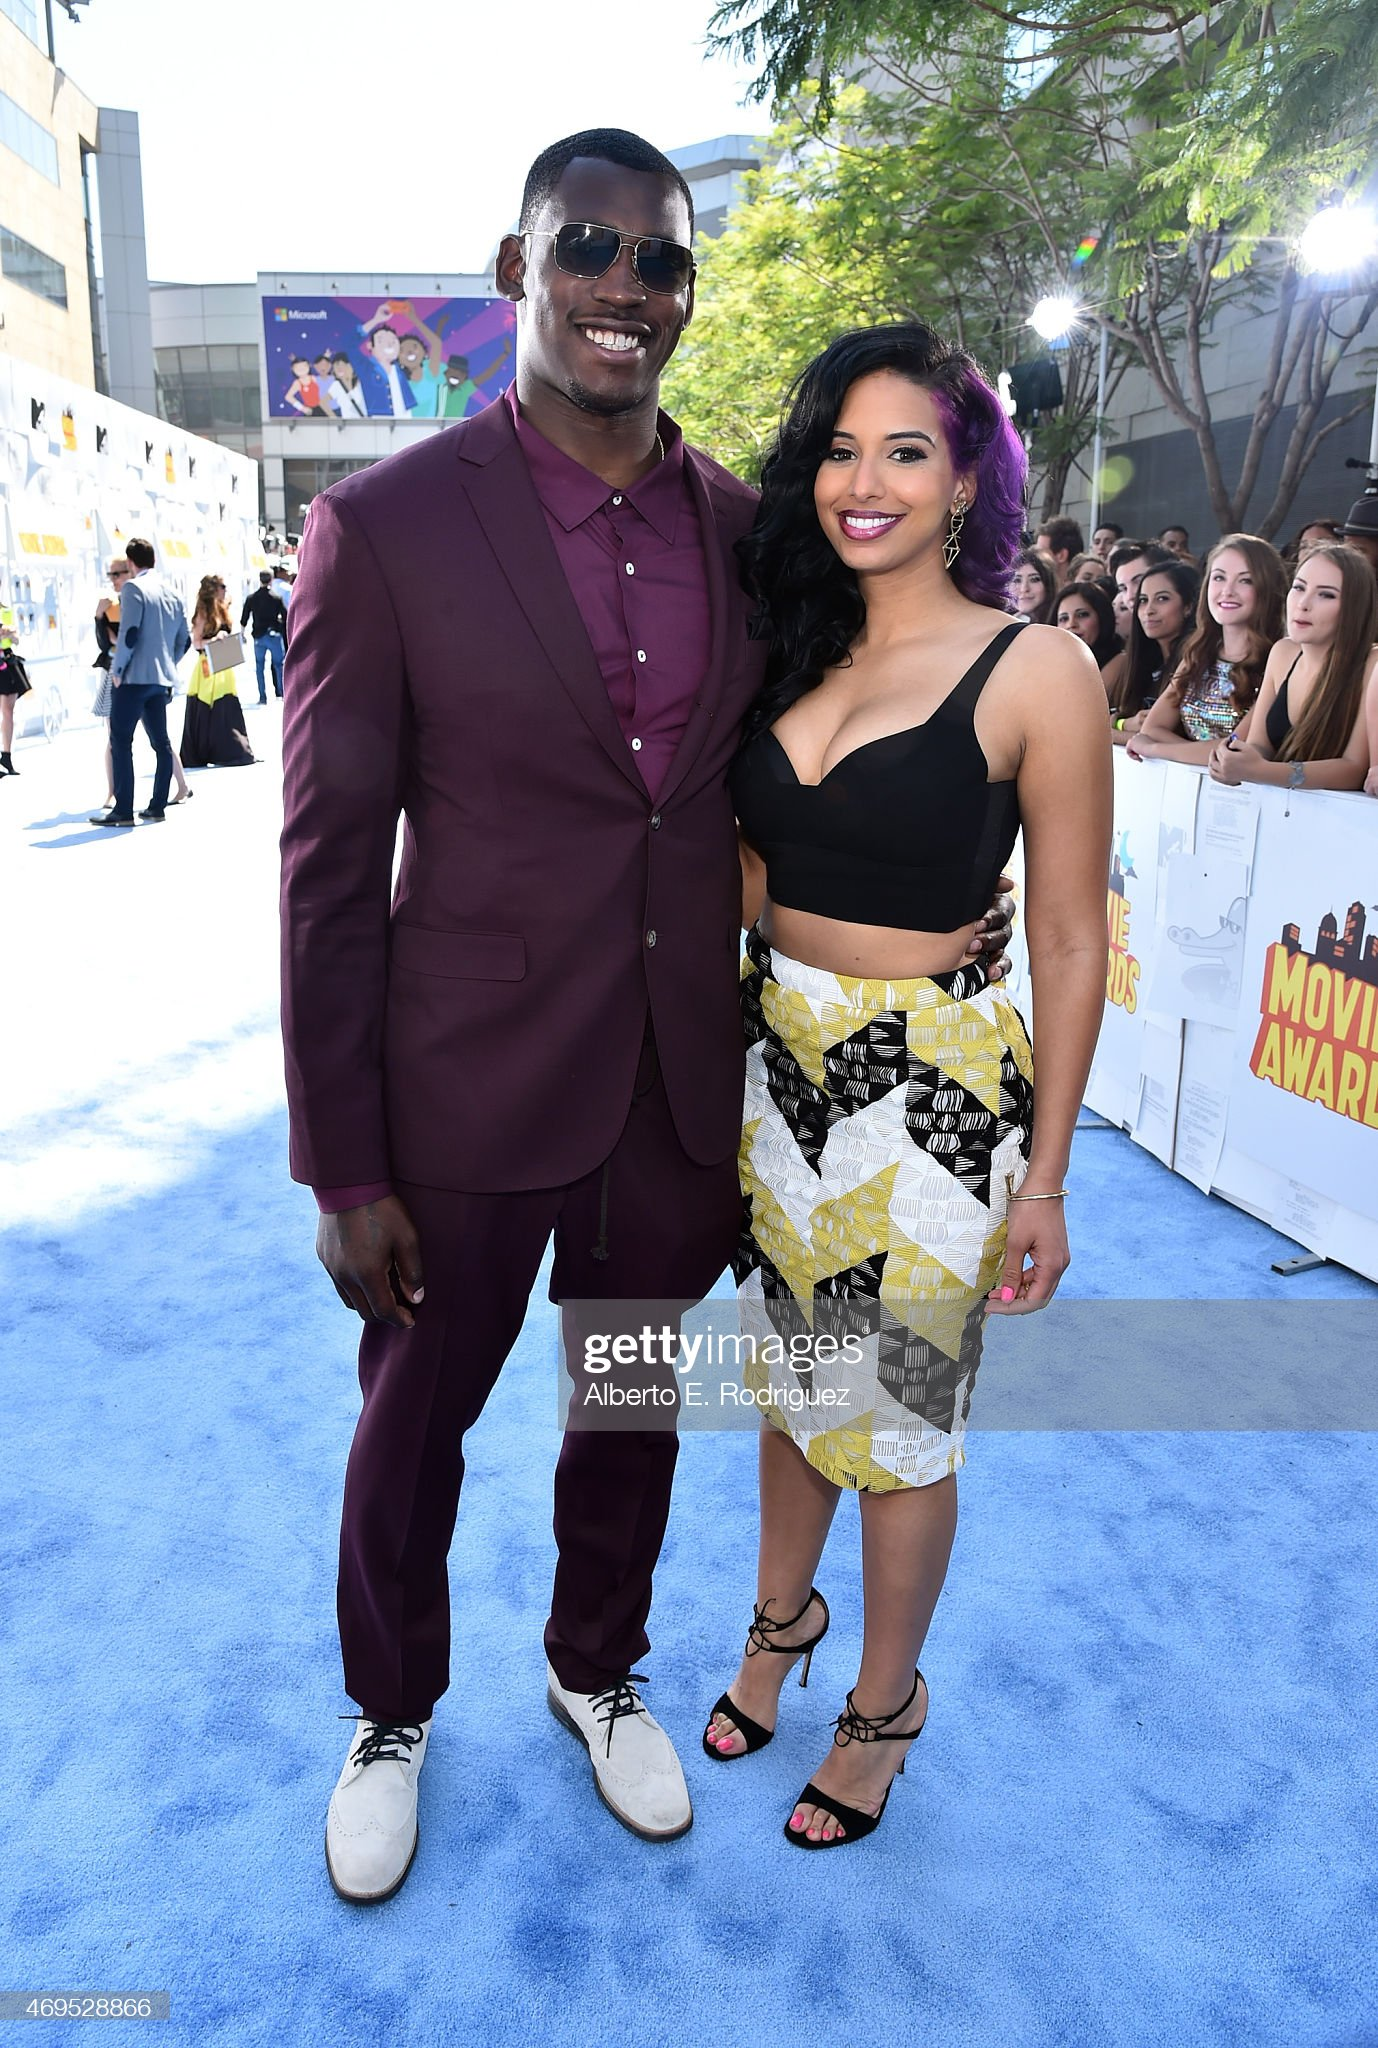 ¿Cuánto mide Nessa? - Real height Player-aldon-smith-and-host-nessa-attend-the-2015-mtv-movie-awards-at-picture-id469528866?s=2048x2048